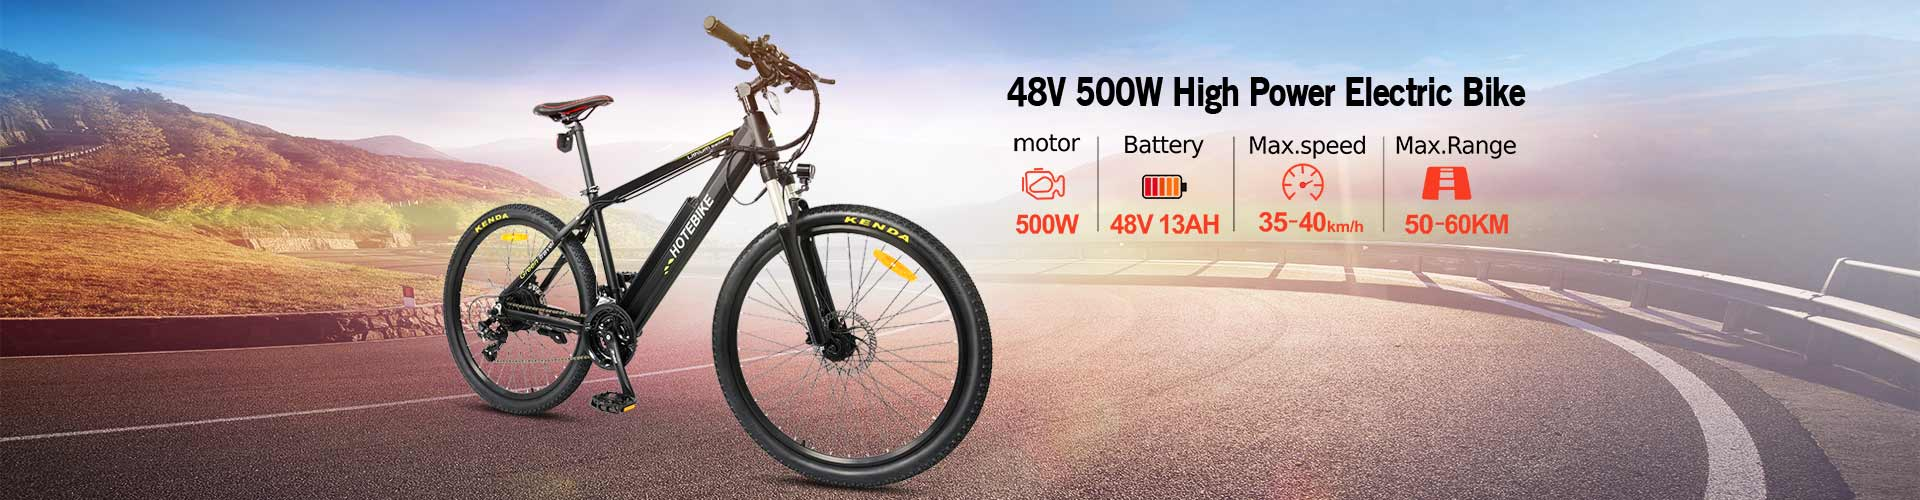 electric bike 48v 500w